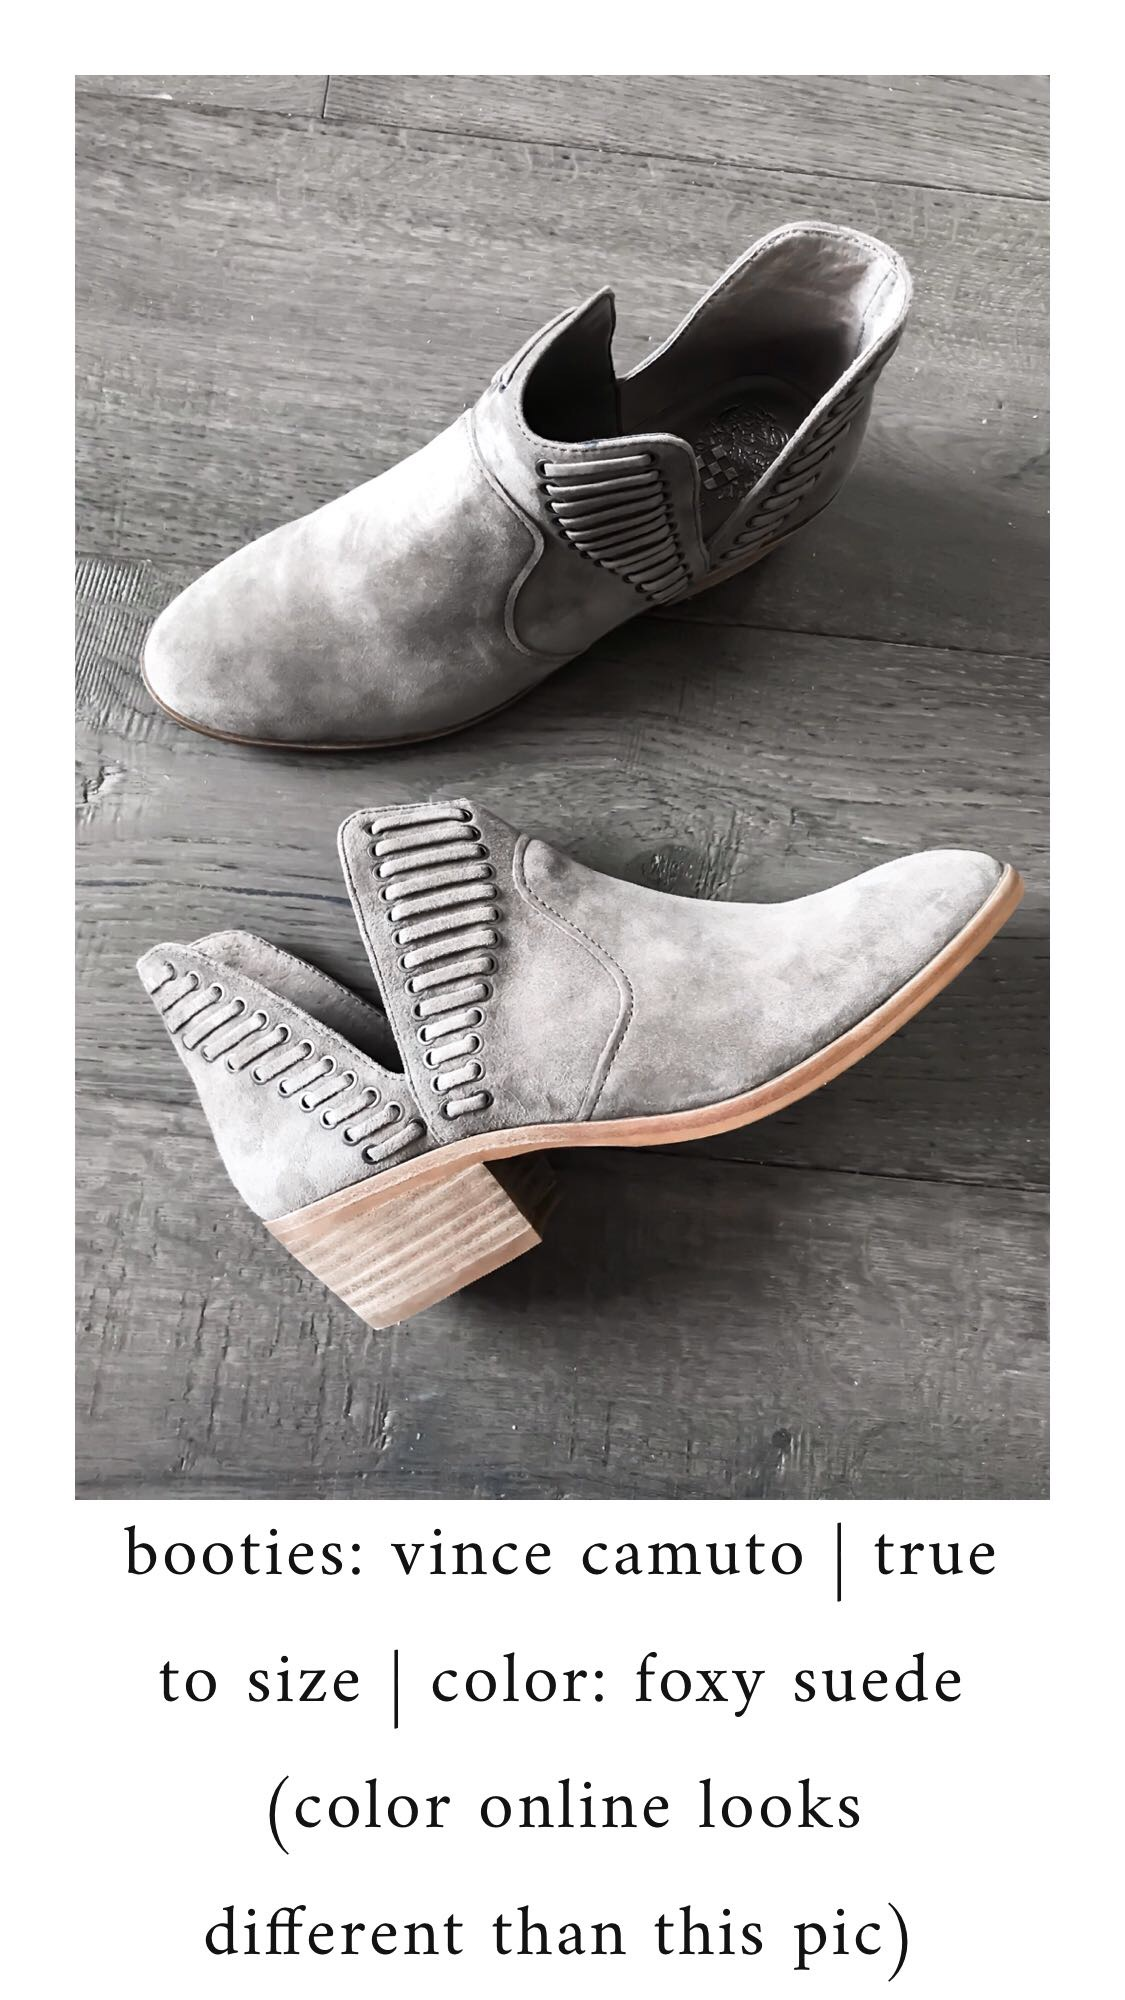 Nordstrom Anniversary Sale 2018: What I Purchased | Pine Barren Beauty | Vince camuto booties, cutout booties, suede booties, fall shoes